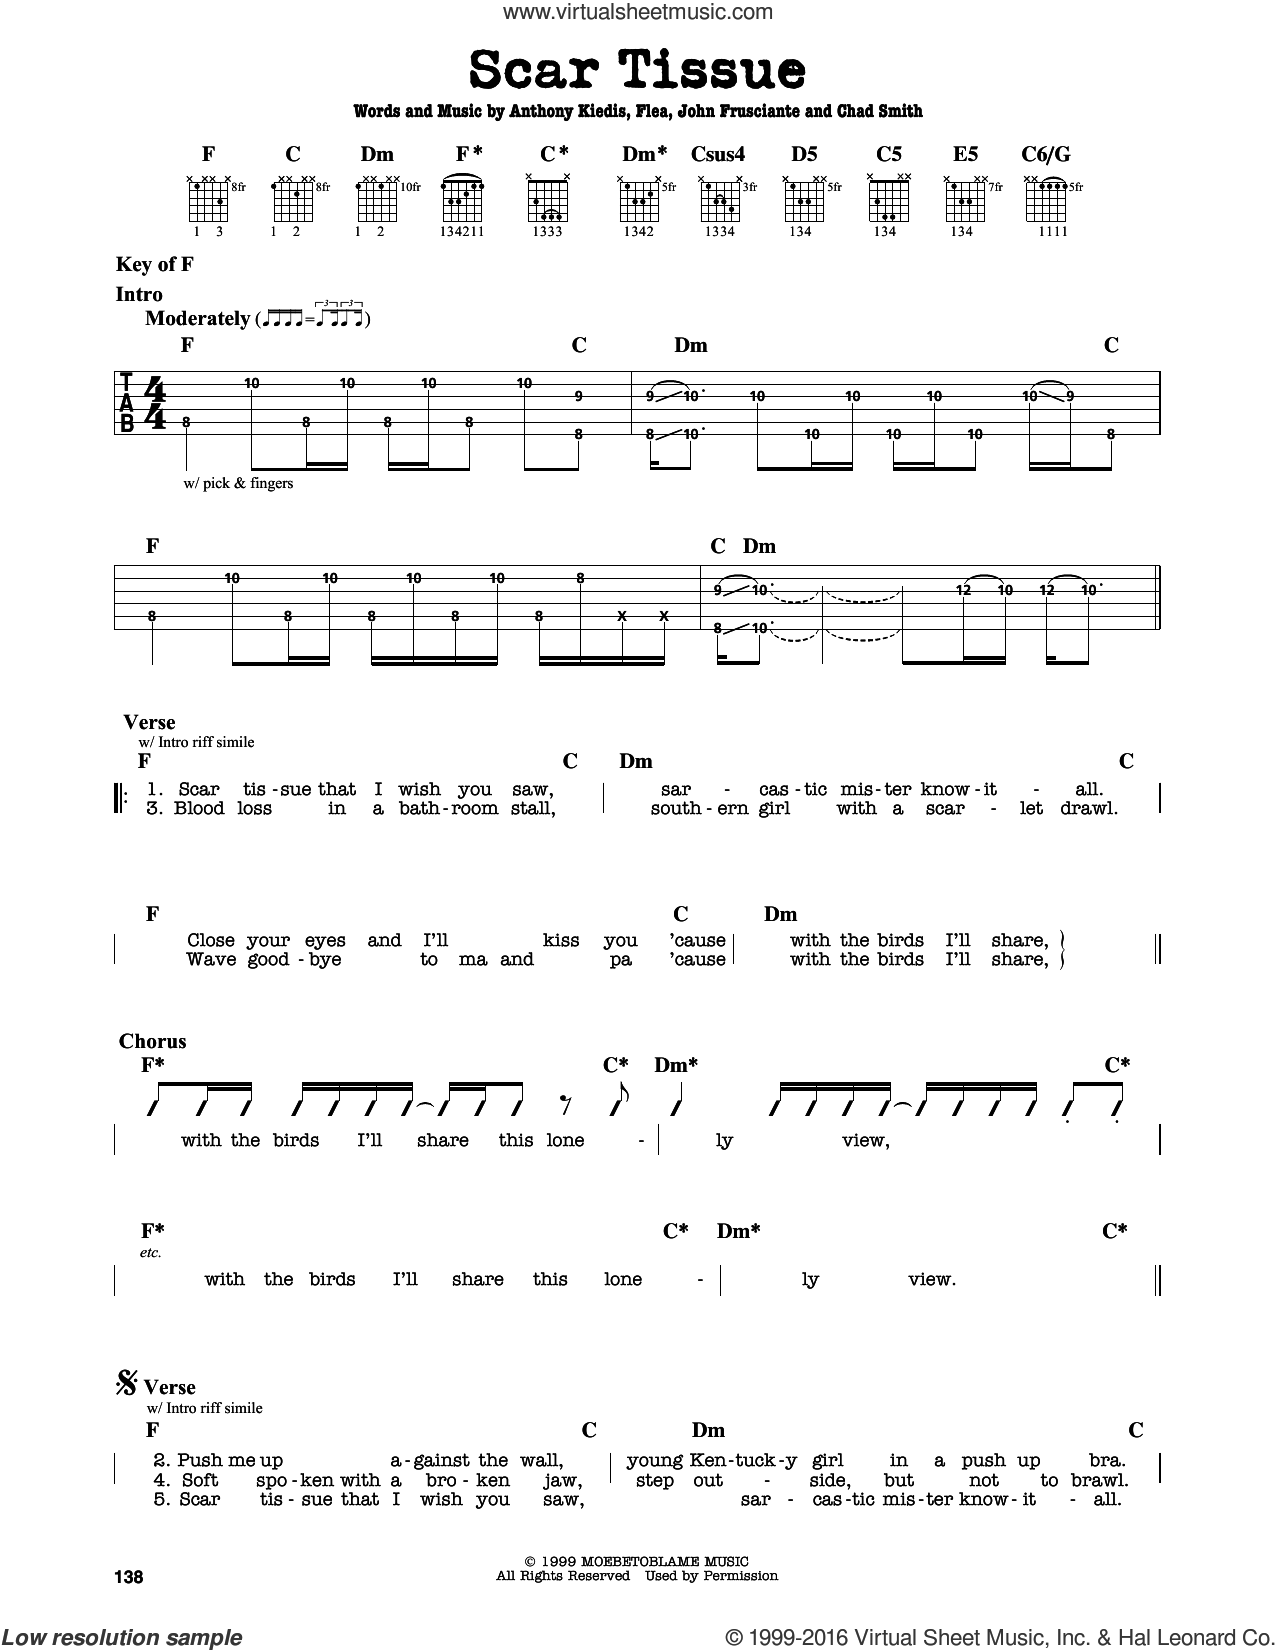 Scar Tissue sheet music for guitar solo (lead sheet) by Red Hot Chili Peppers, Anthony Kiedis, Chad Smith, Flea and John Frusciante, intermediate guitar (lead sheet). Score Image Preview.